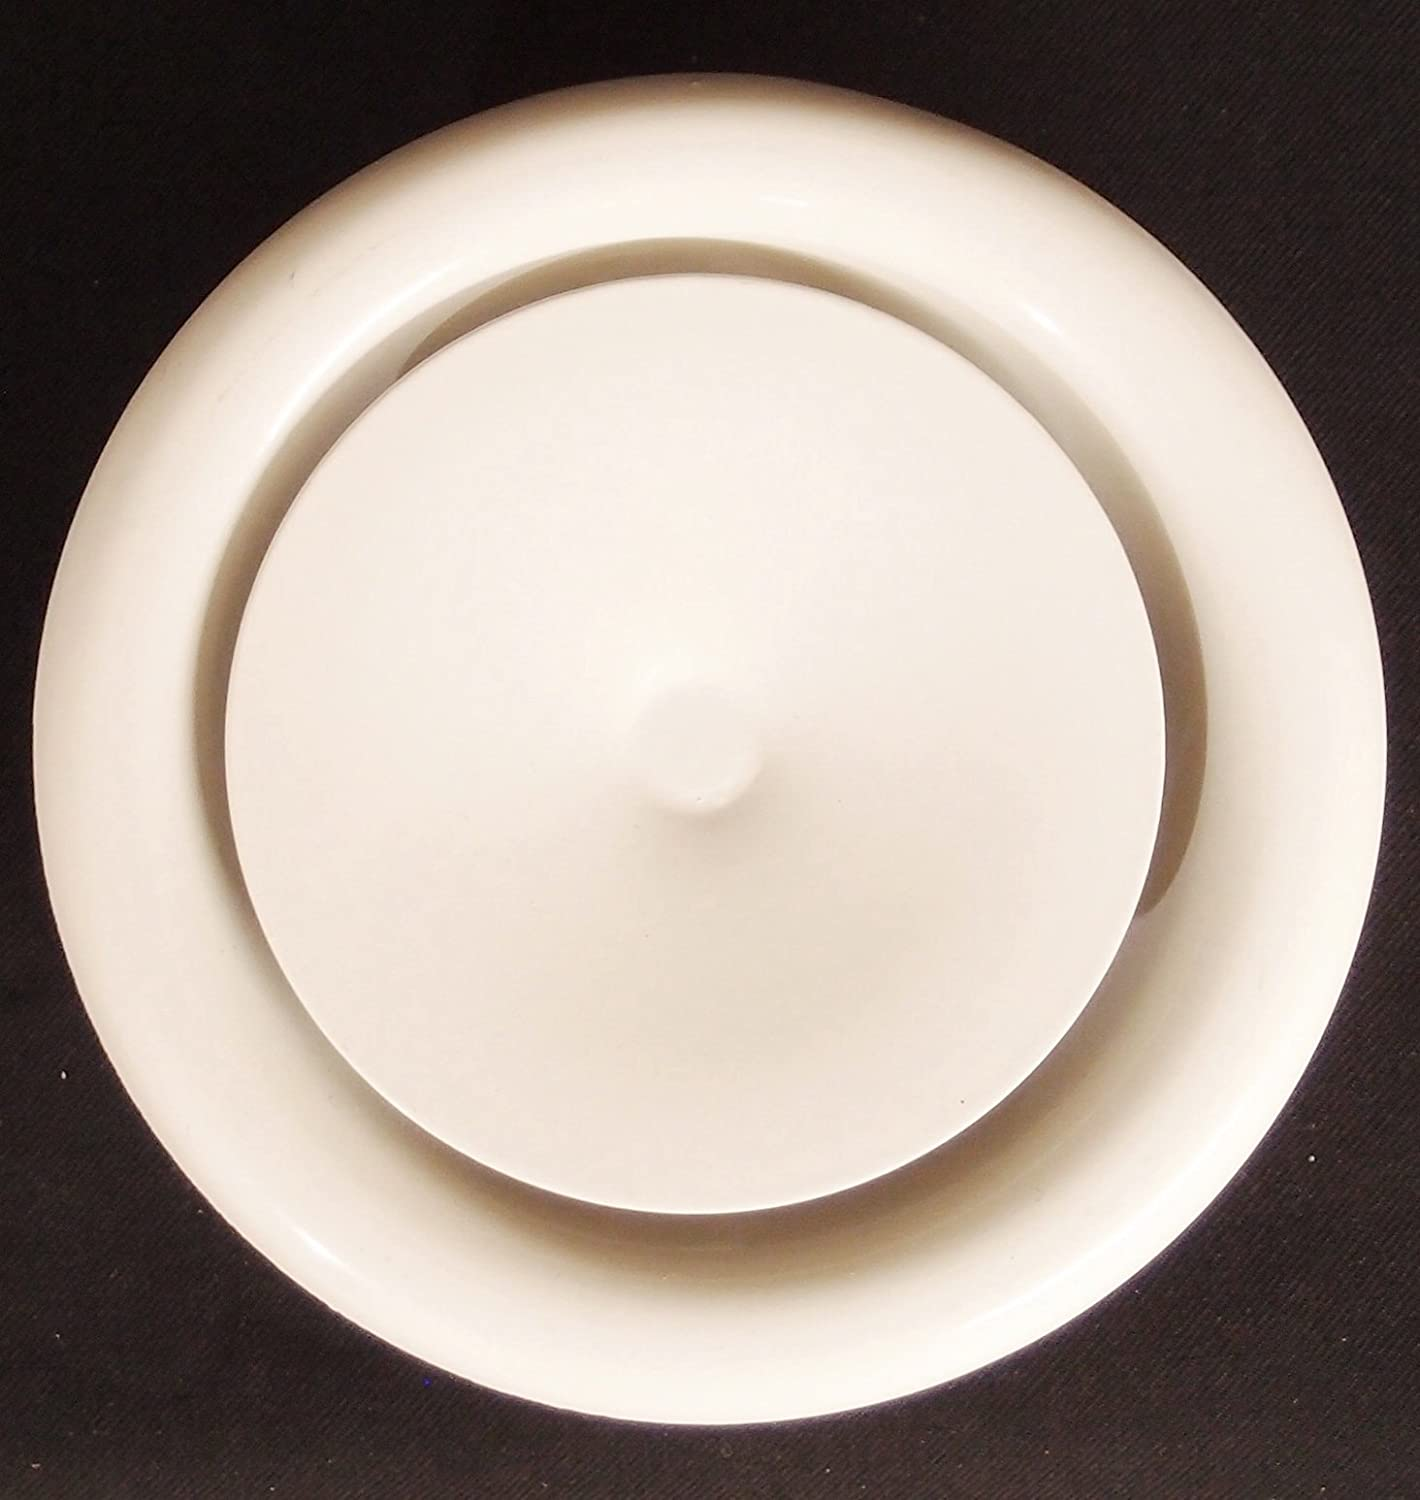 """8"""" Round Air Vent Supply Grille with Sponge Gasket and Mounting Frame - HVAC Vent Duct Register Cover [Outer Dimensions: 10""""]"""